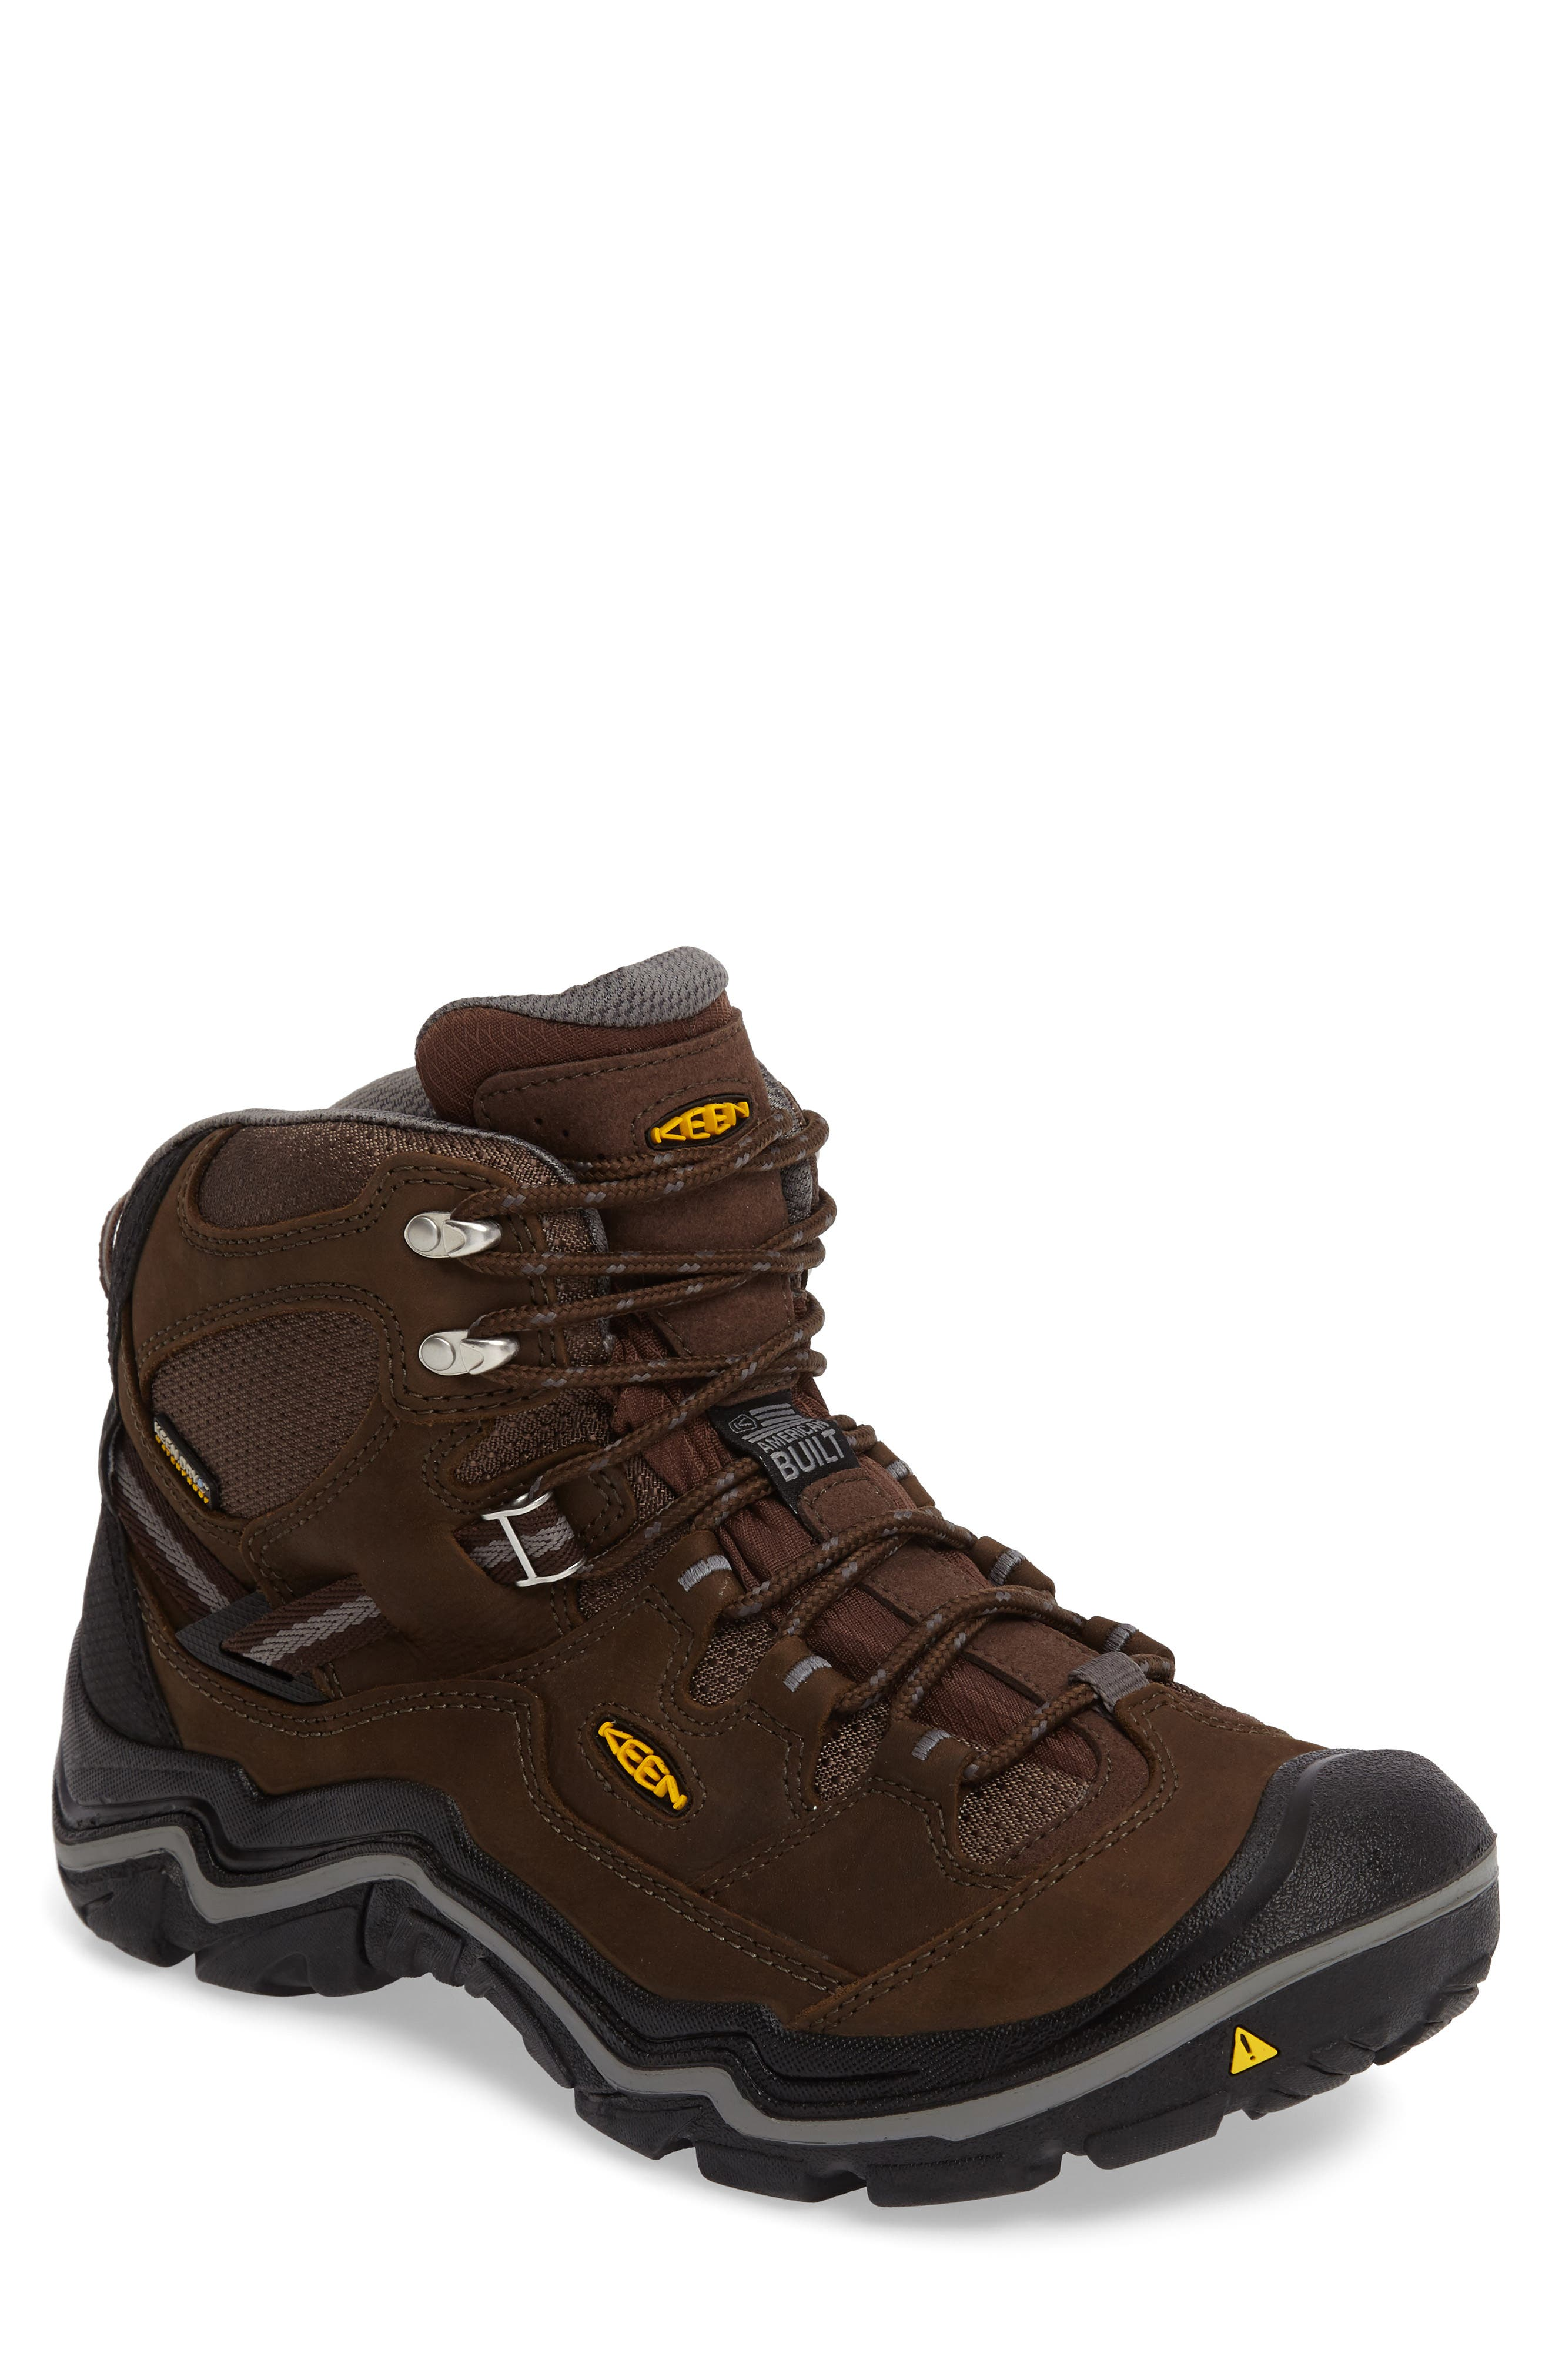 Durand Mid Waterproof Hiking Boot,                             Main thumbnail 1, color,                             BROWN LEATHER